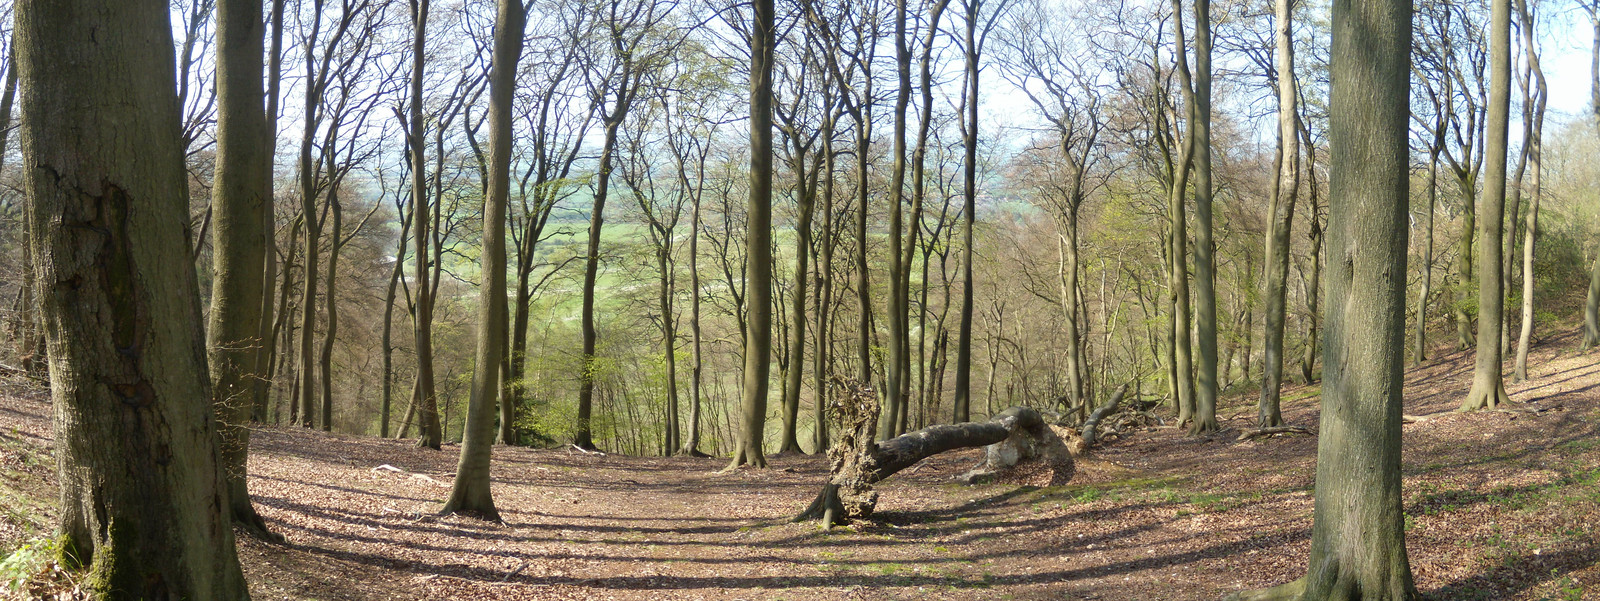 View through trees The woods past Pulpit Hill. Wendover Circular